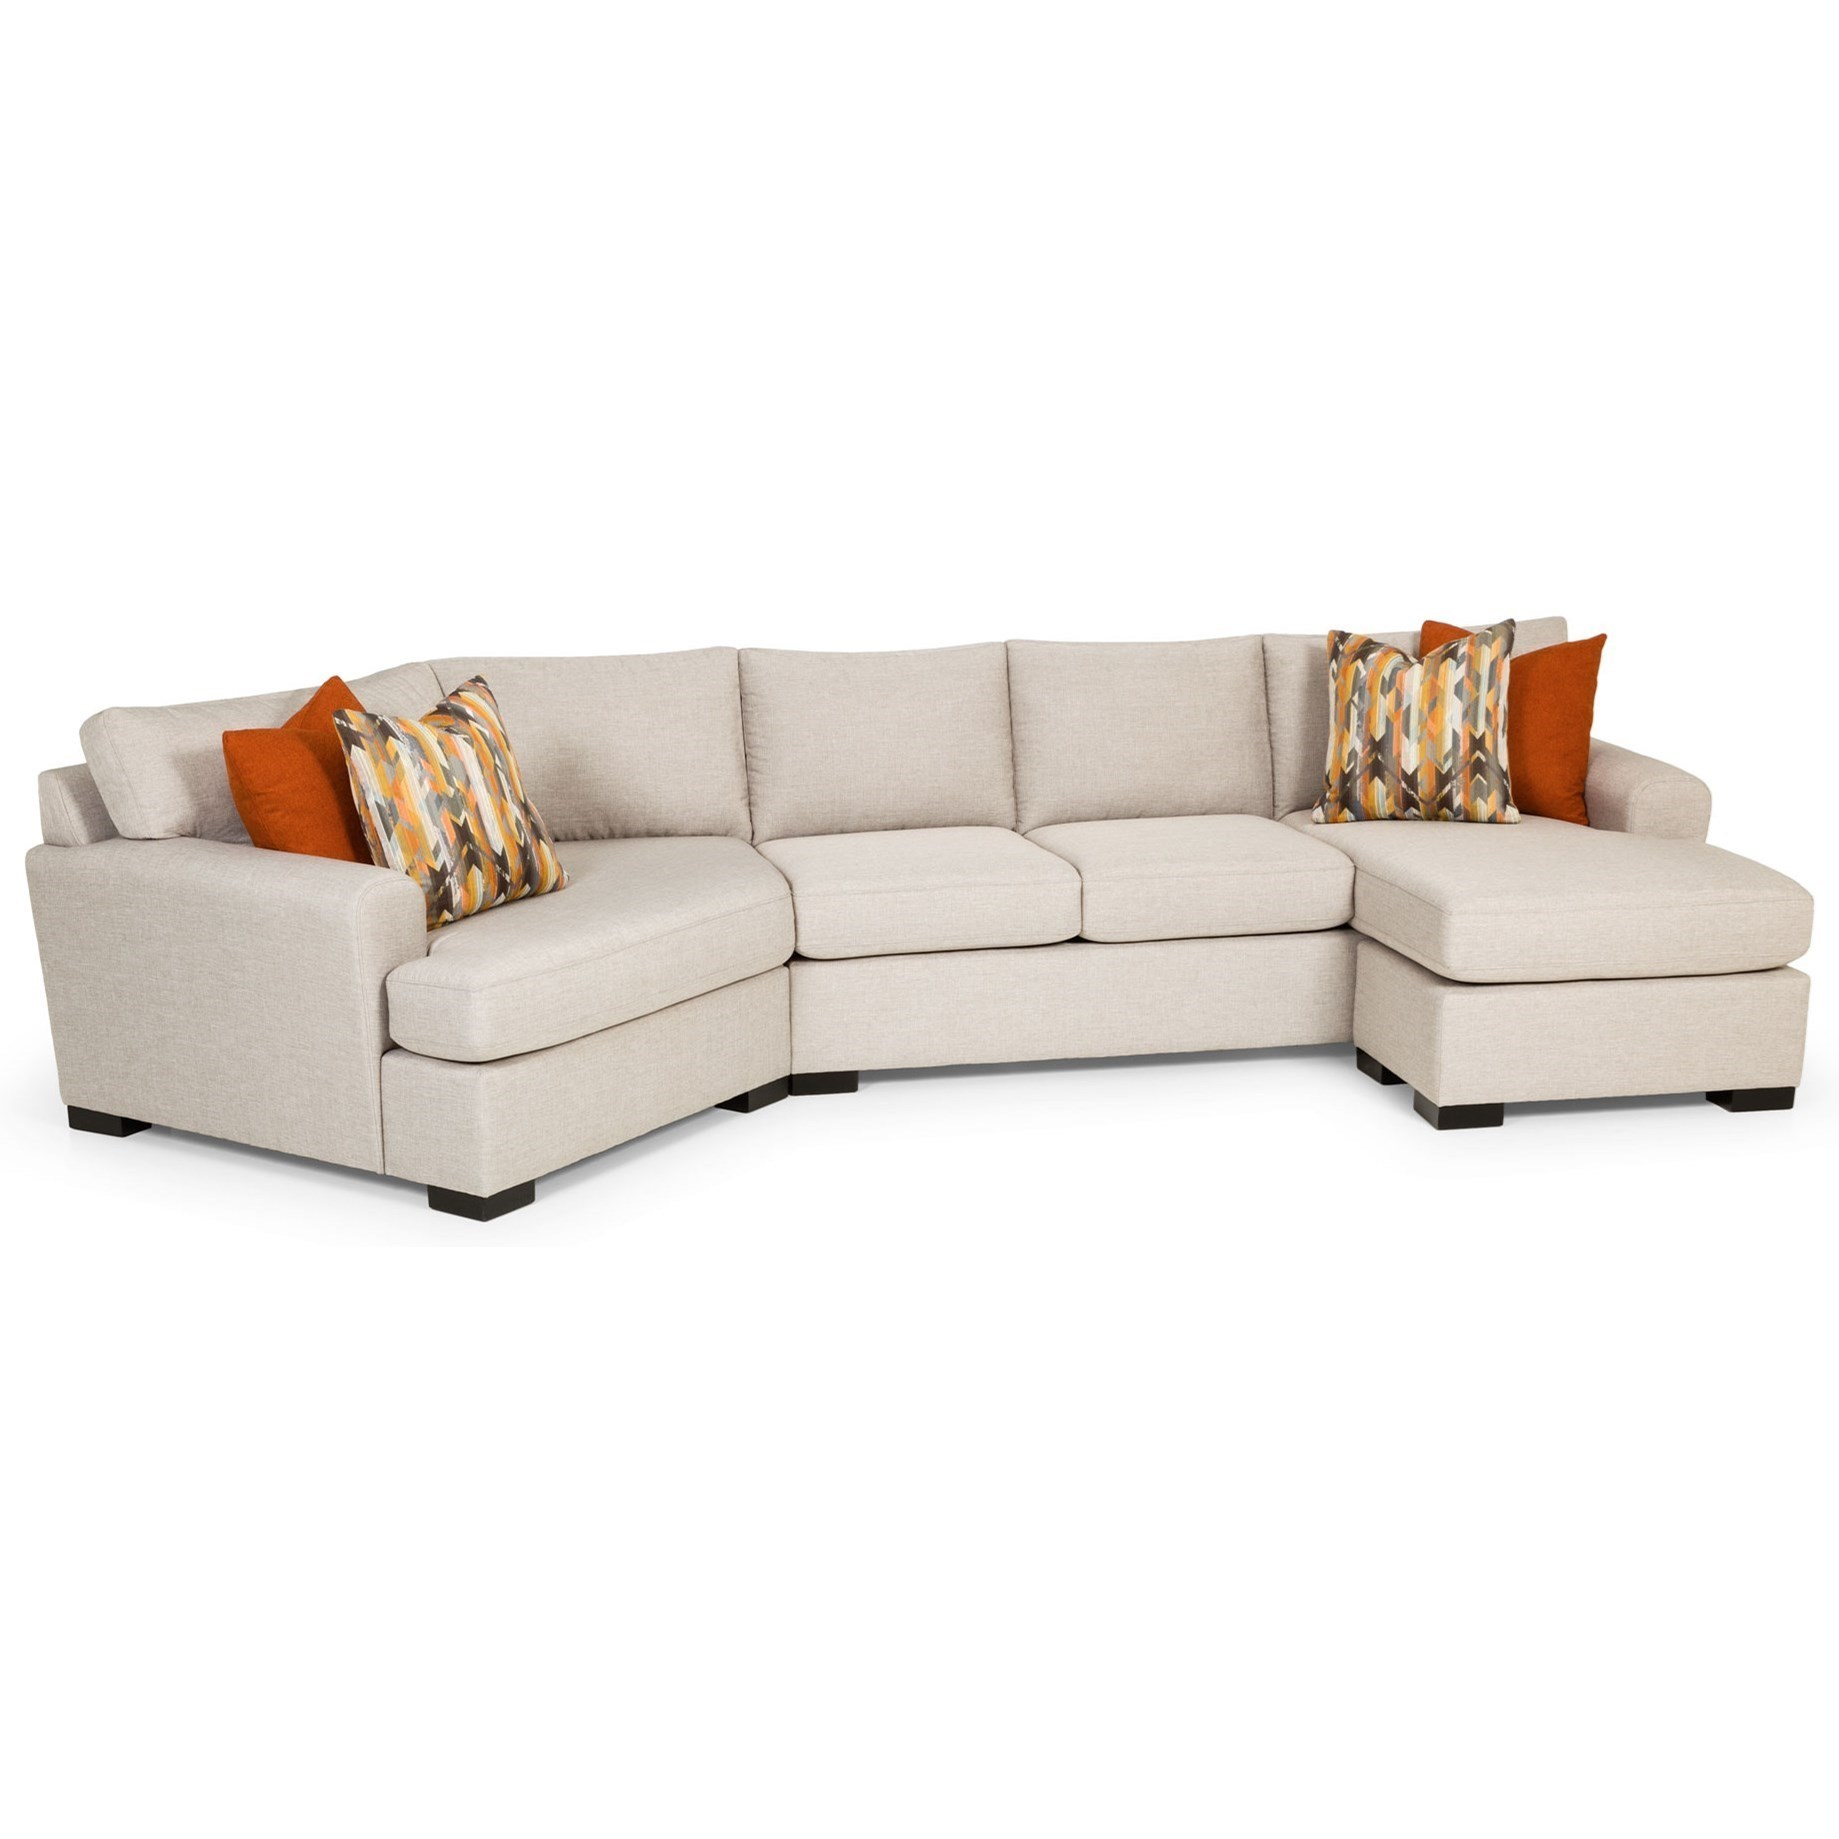 Milford Cuddle Chaise Sectional Aspen 2 Piece Sectional Wraf